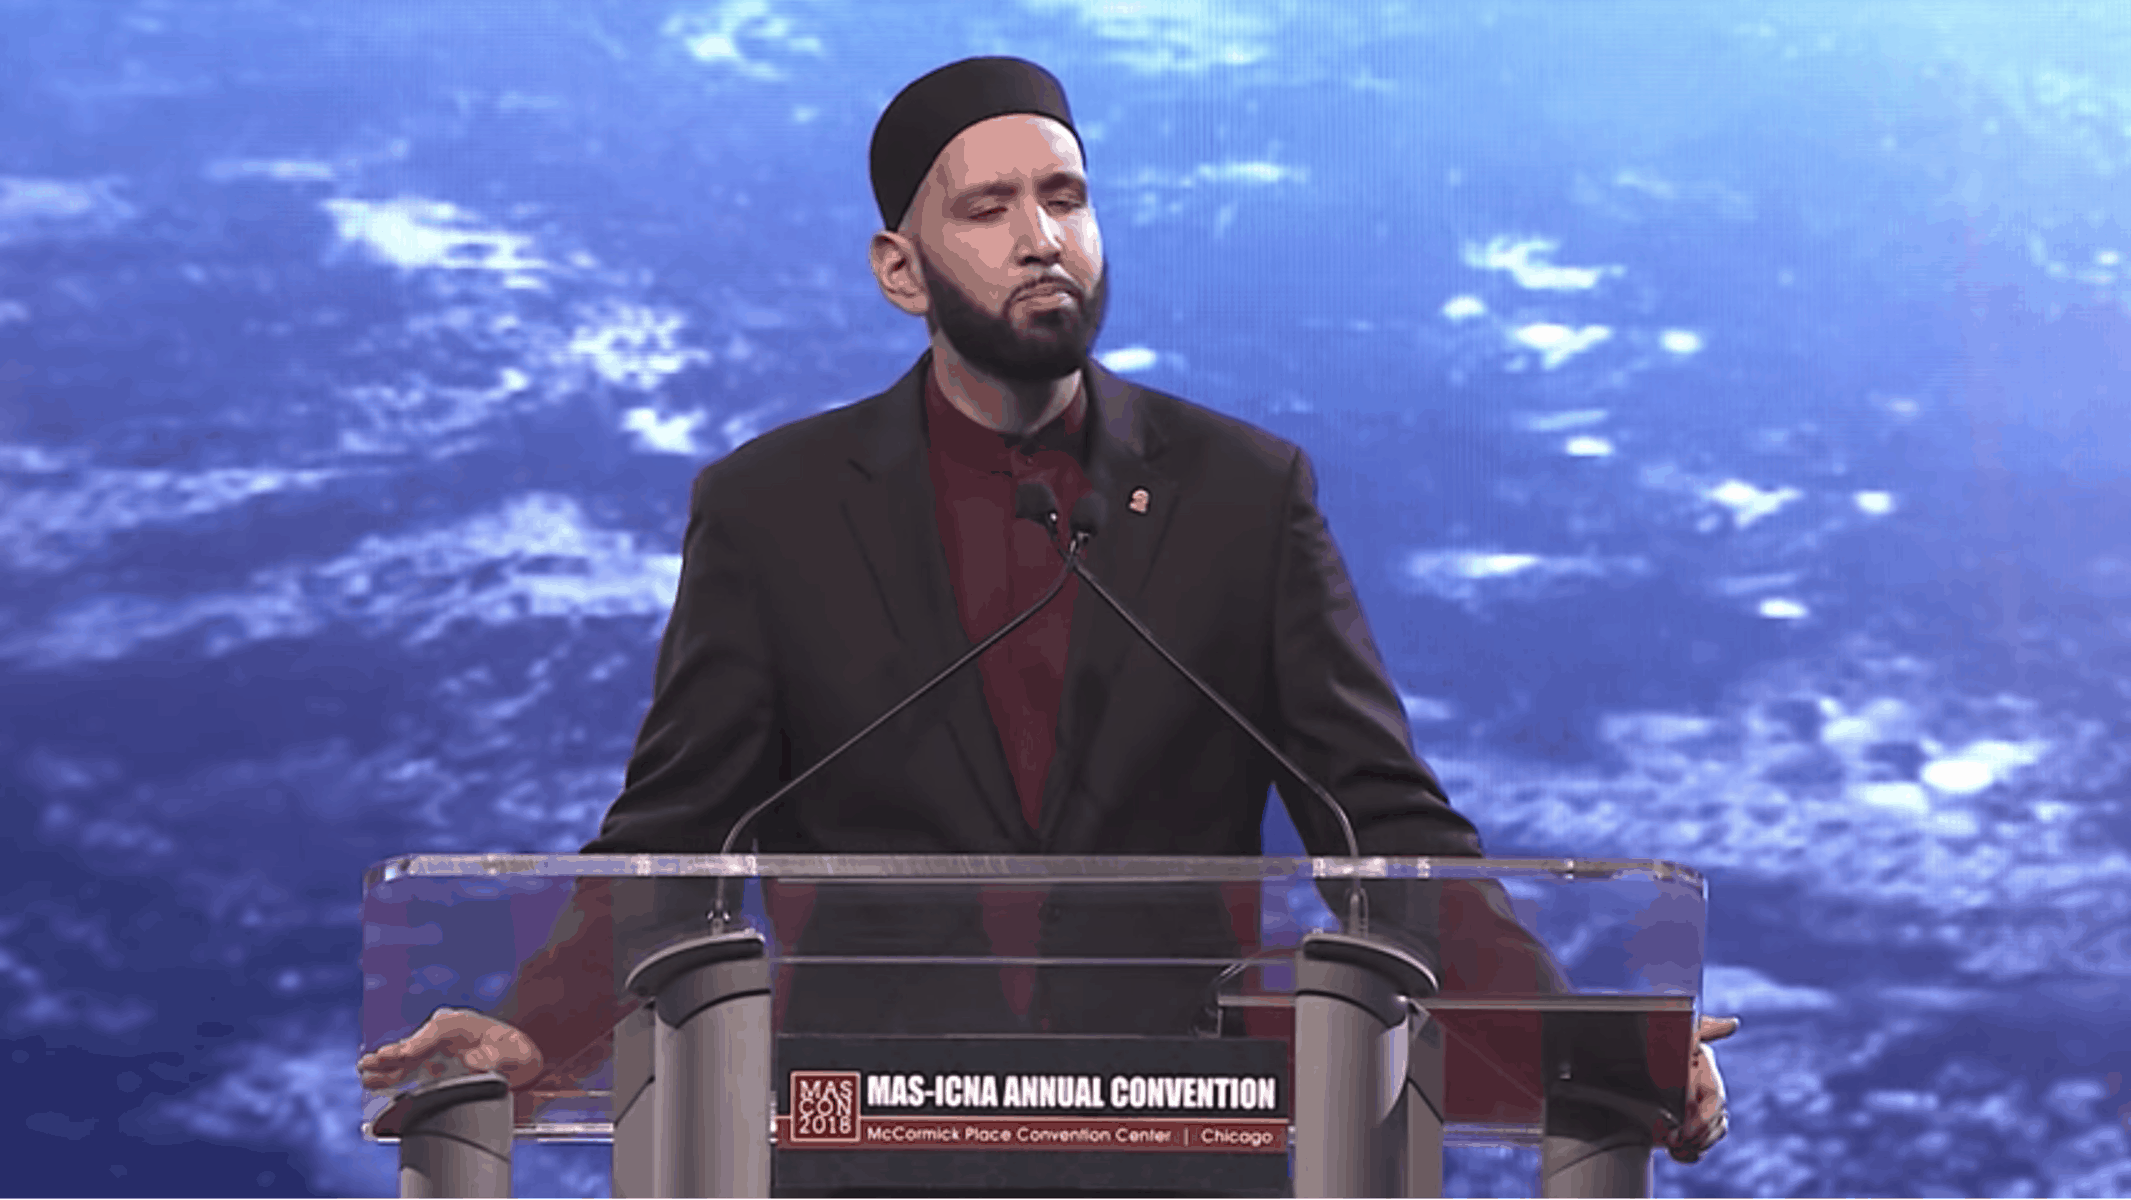 Omar Suleiman – Quran: The Light to the World